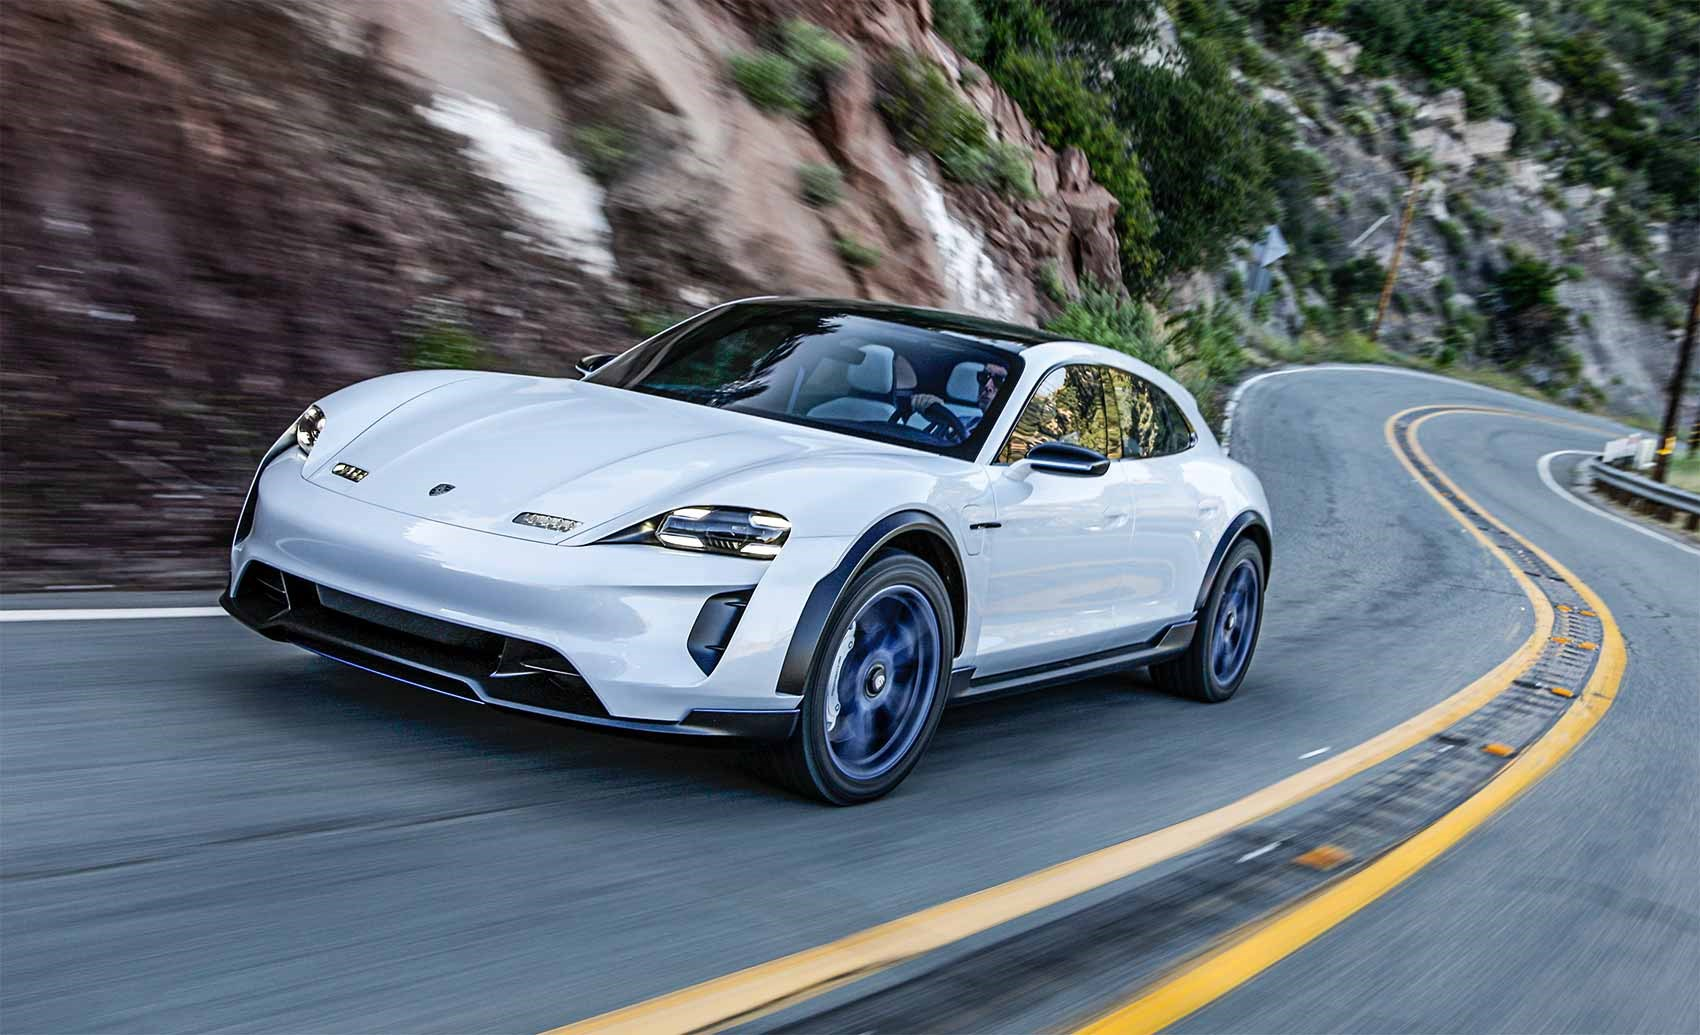 Toyota Lease Deals >> Porsche Mission E Cross Turismo review | CAR Magazine